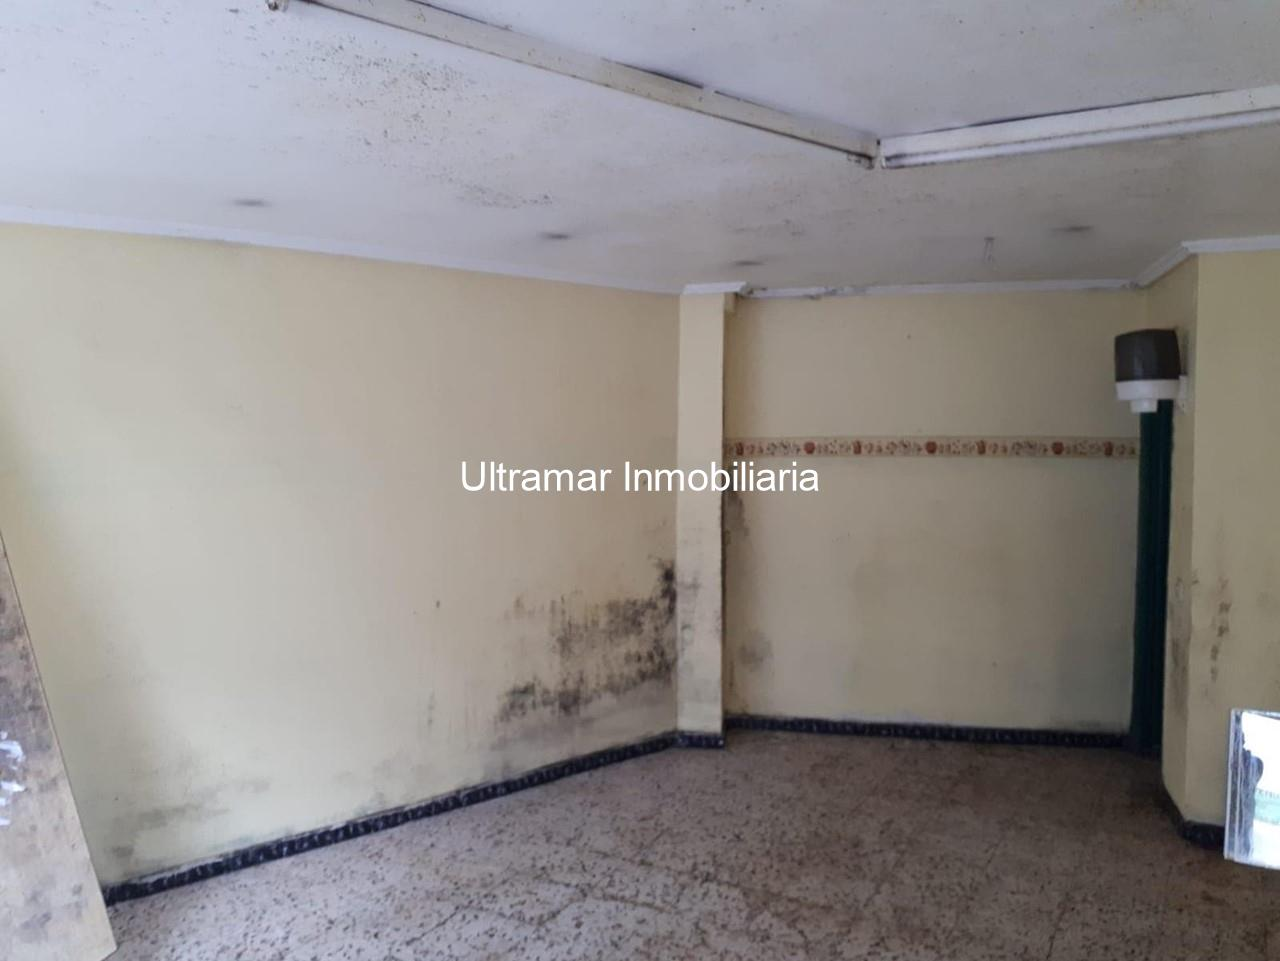 Foto 2 Local comercial en venta en Ultramar